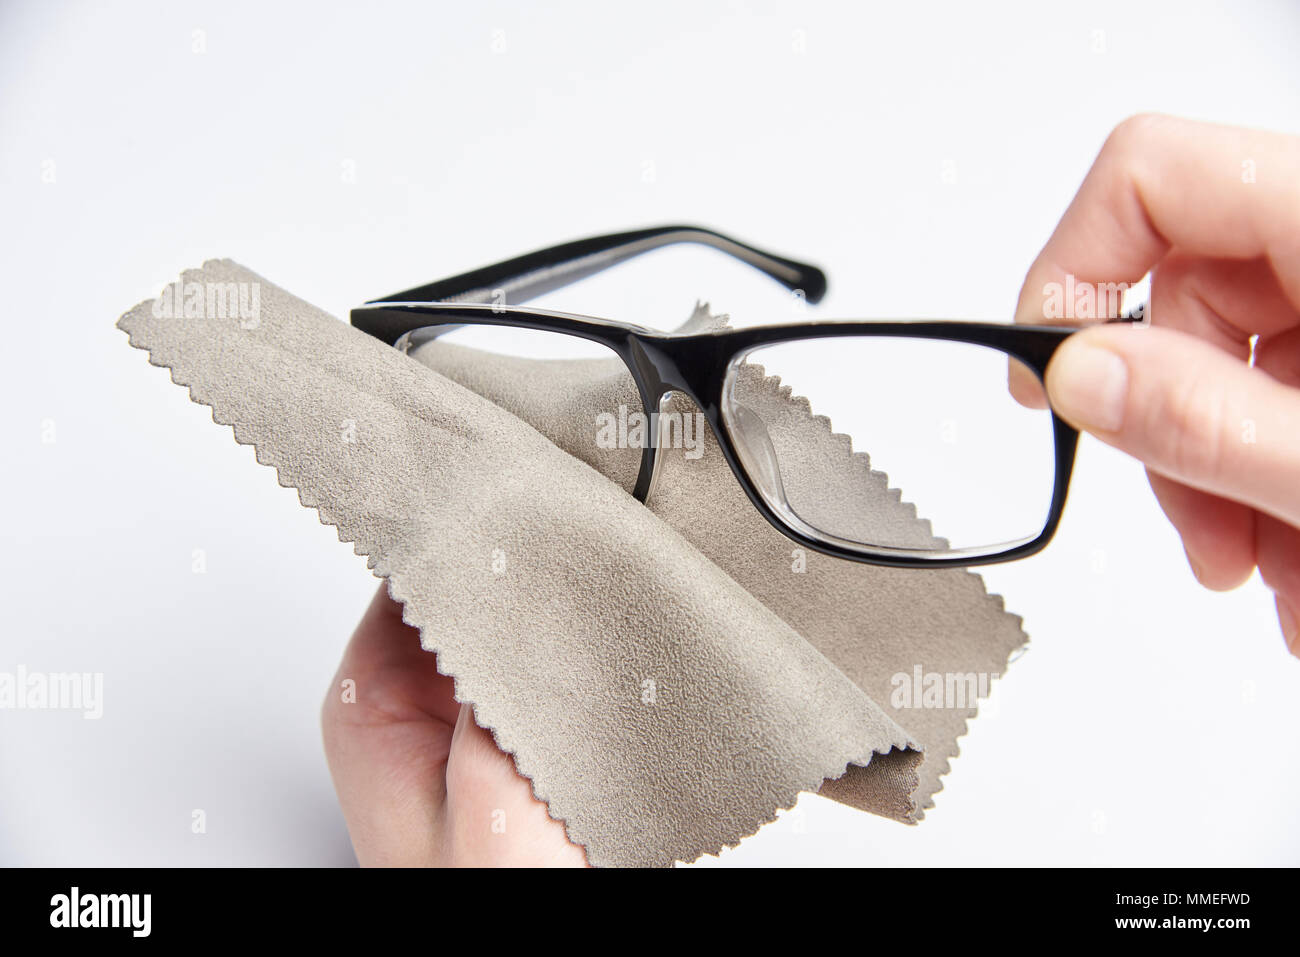 Glasses Clean Cloth Lens Spectacles Wipe Frame Hand Stock Photos ...